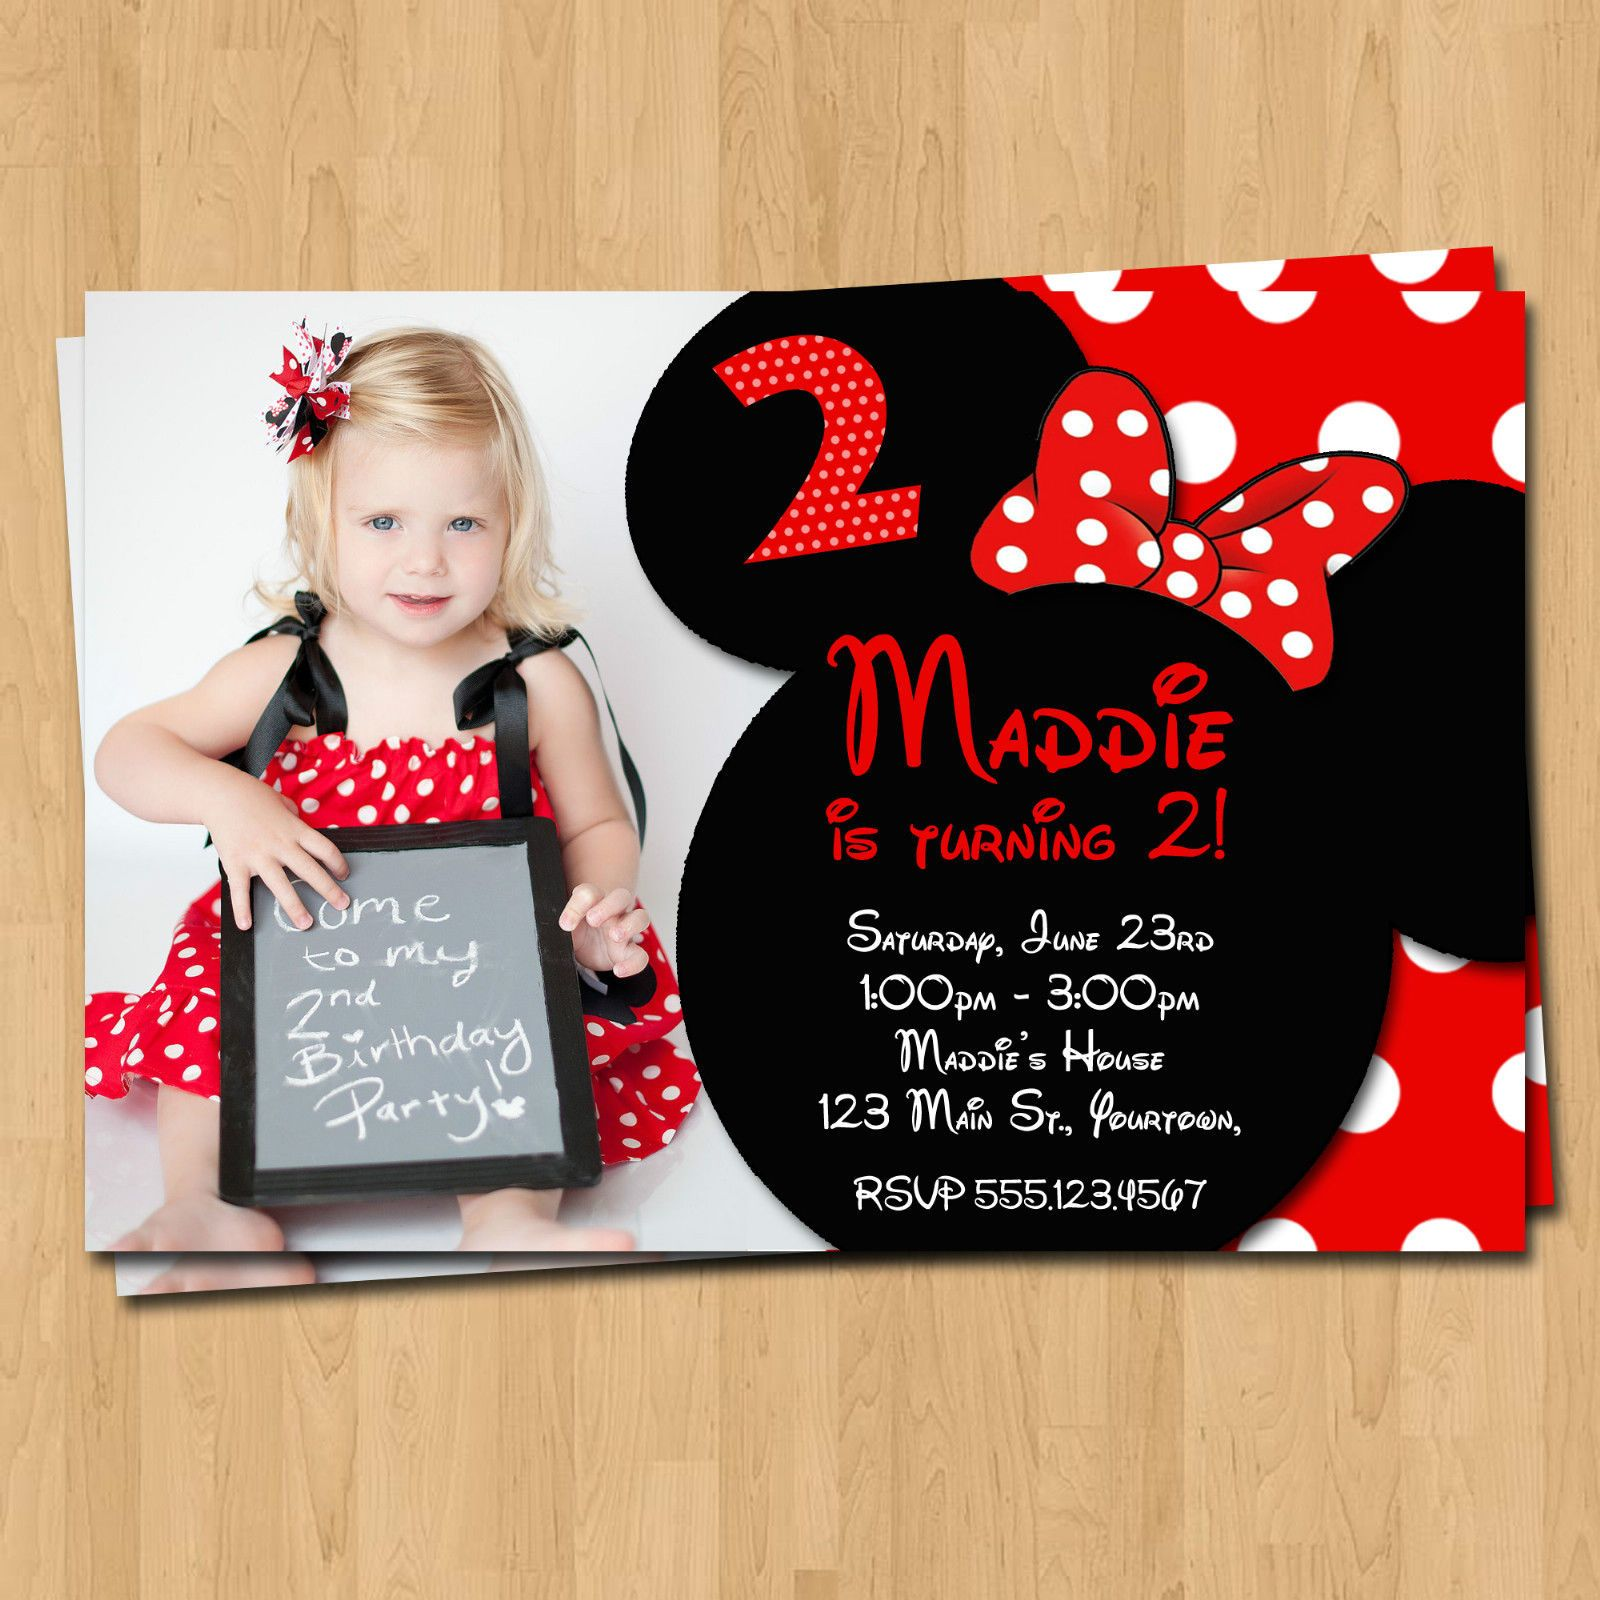 Get Free Printable Minnie Mouse Birthday Party Invitations | Free ...